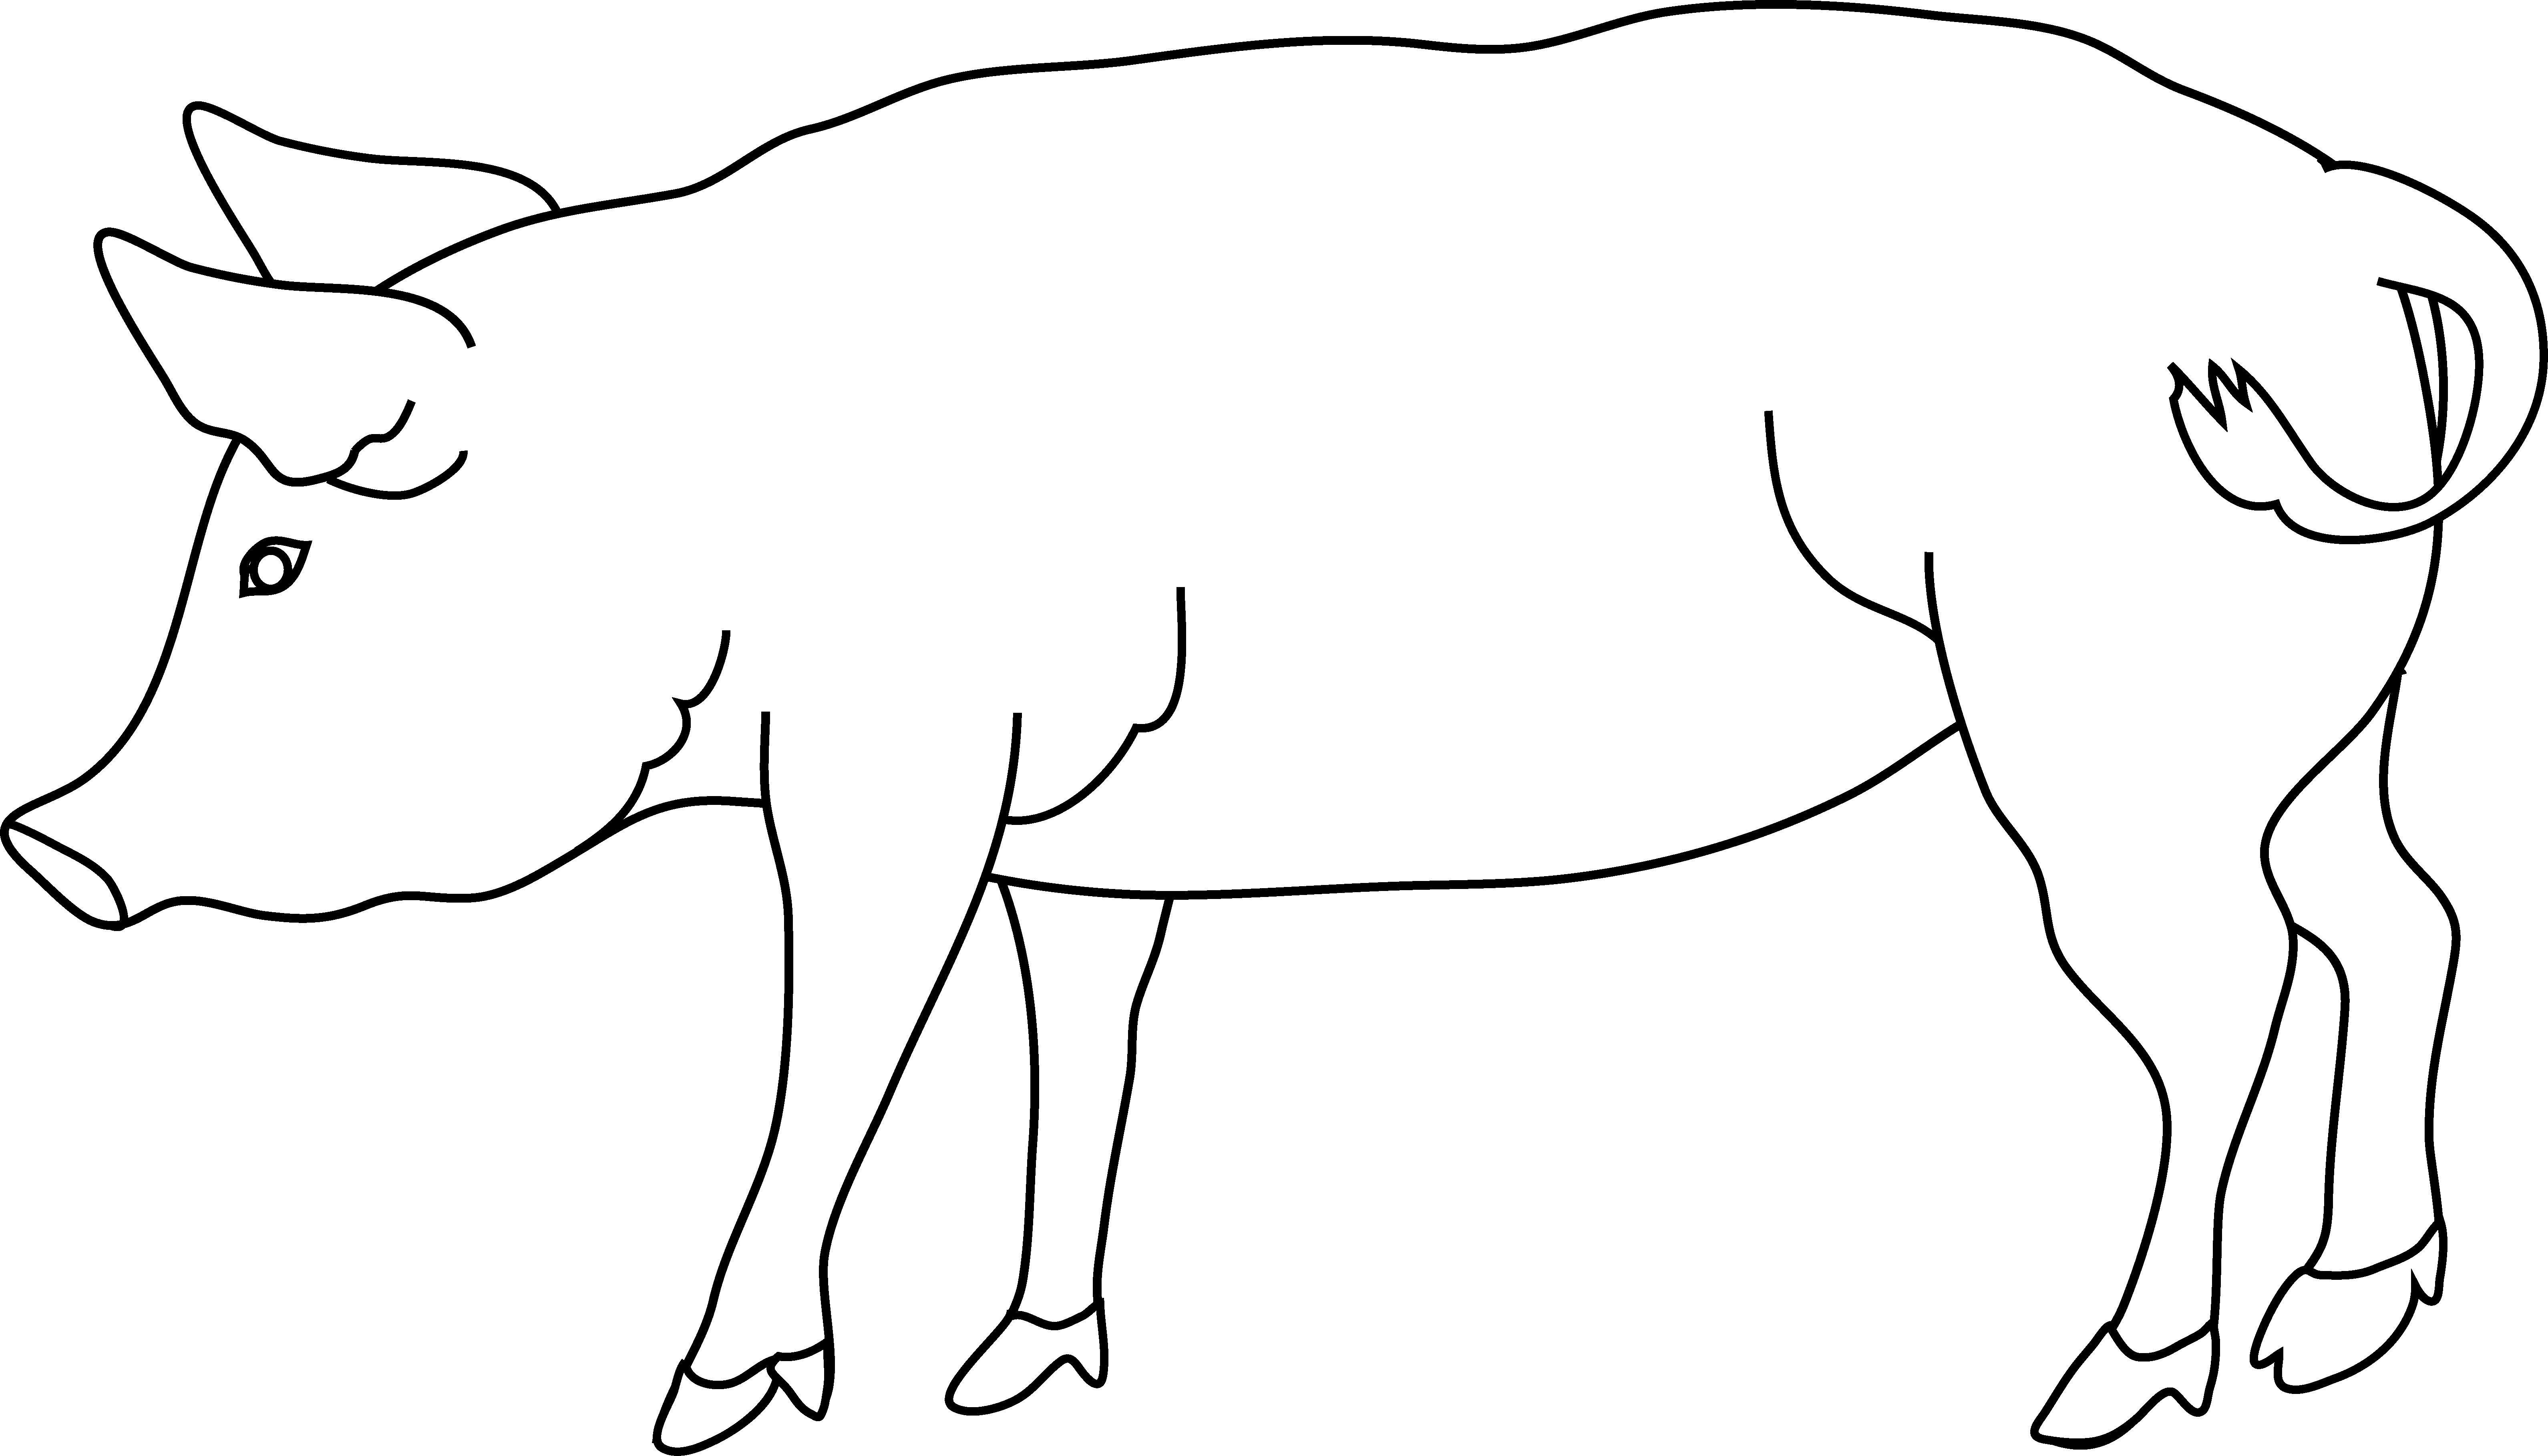 pig outline pig clipart outline pig outline transparent free for pig outline